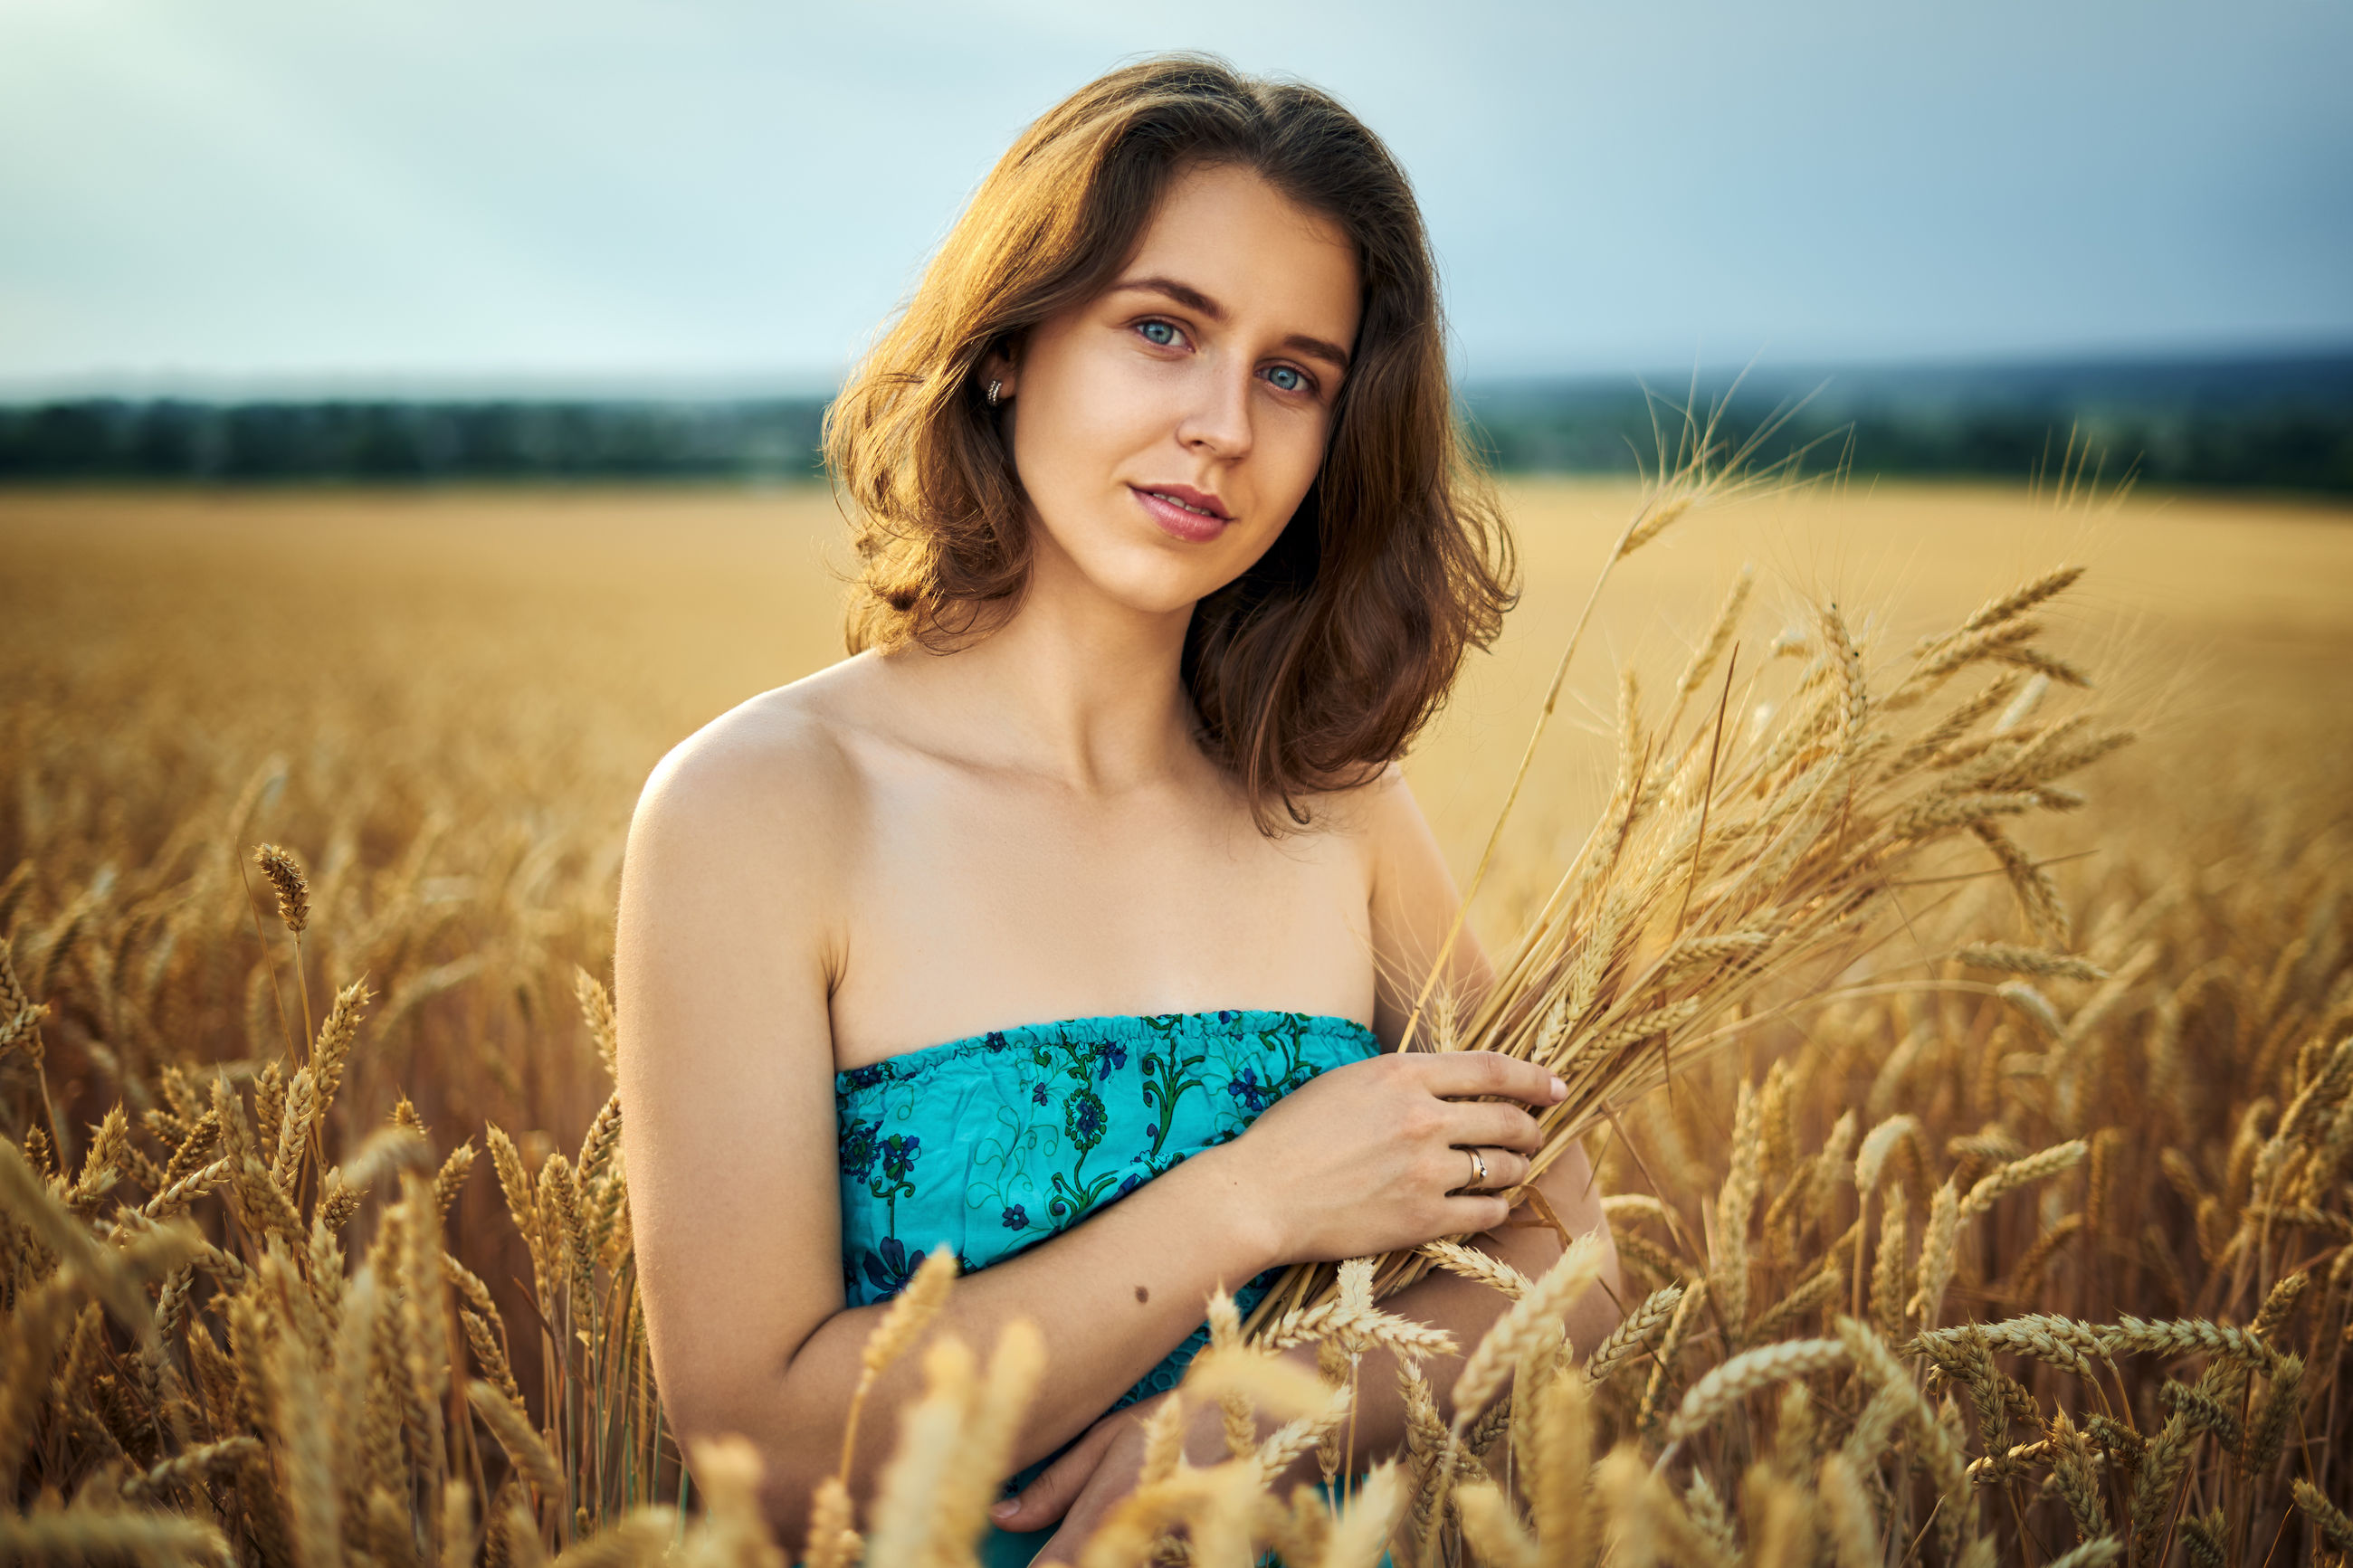 Portrait of beautiful young woman by plants in farm